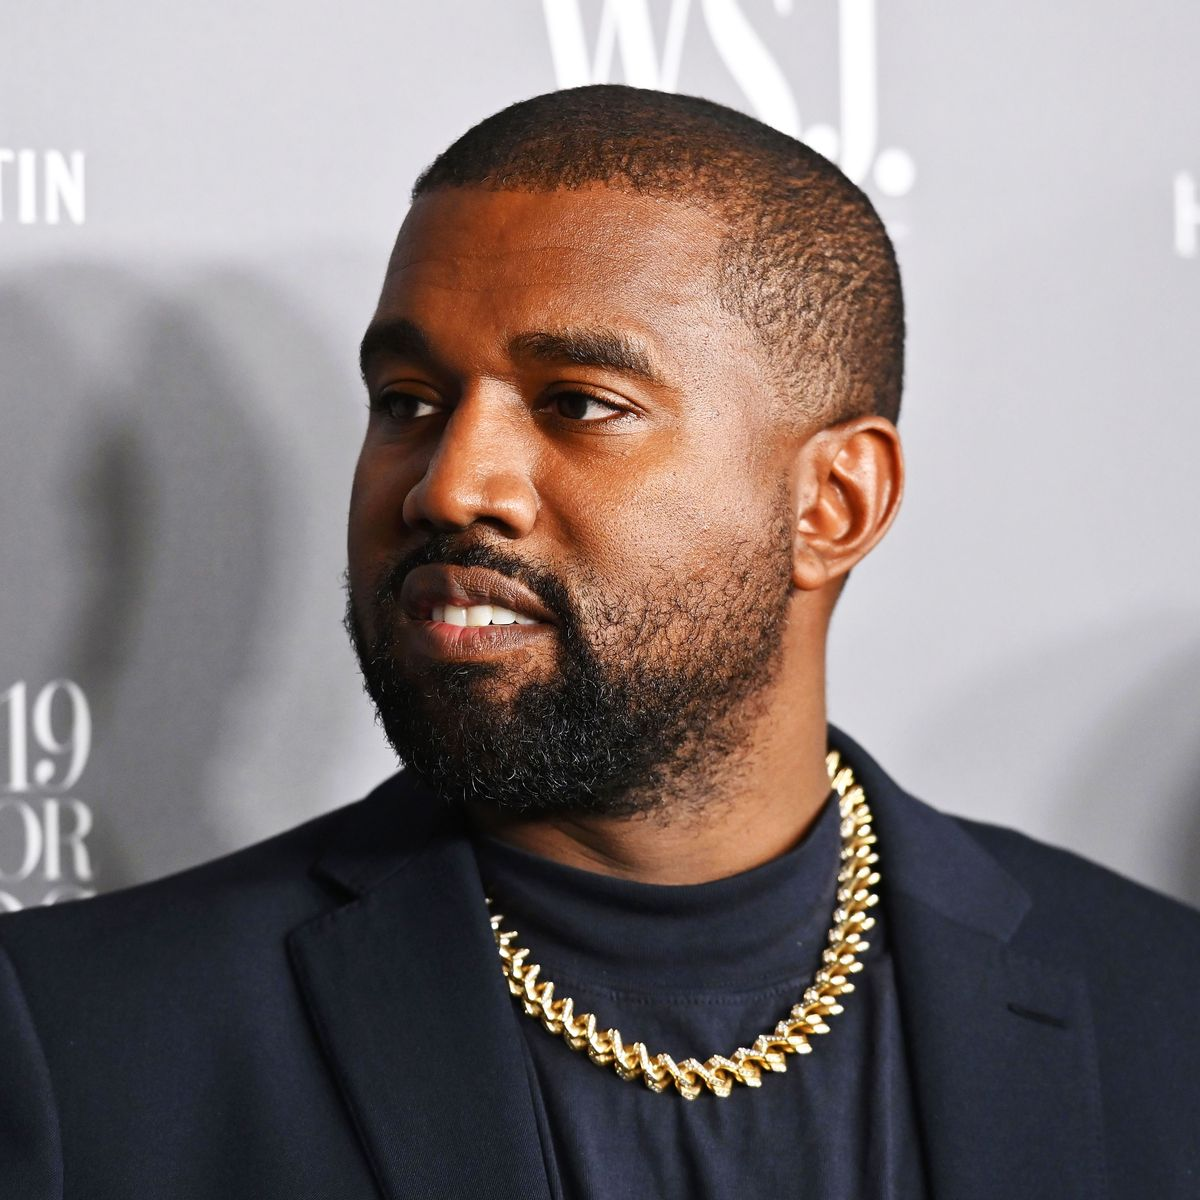 Drama As Kanye West Pulls A Miracle Stunt And Walks On Water With His Kids At A Church Service